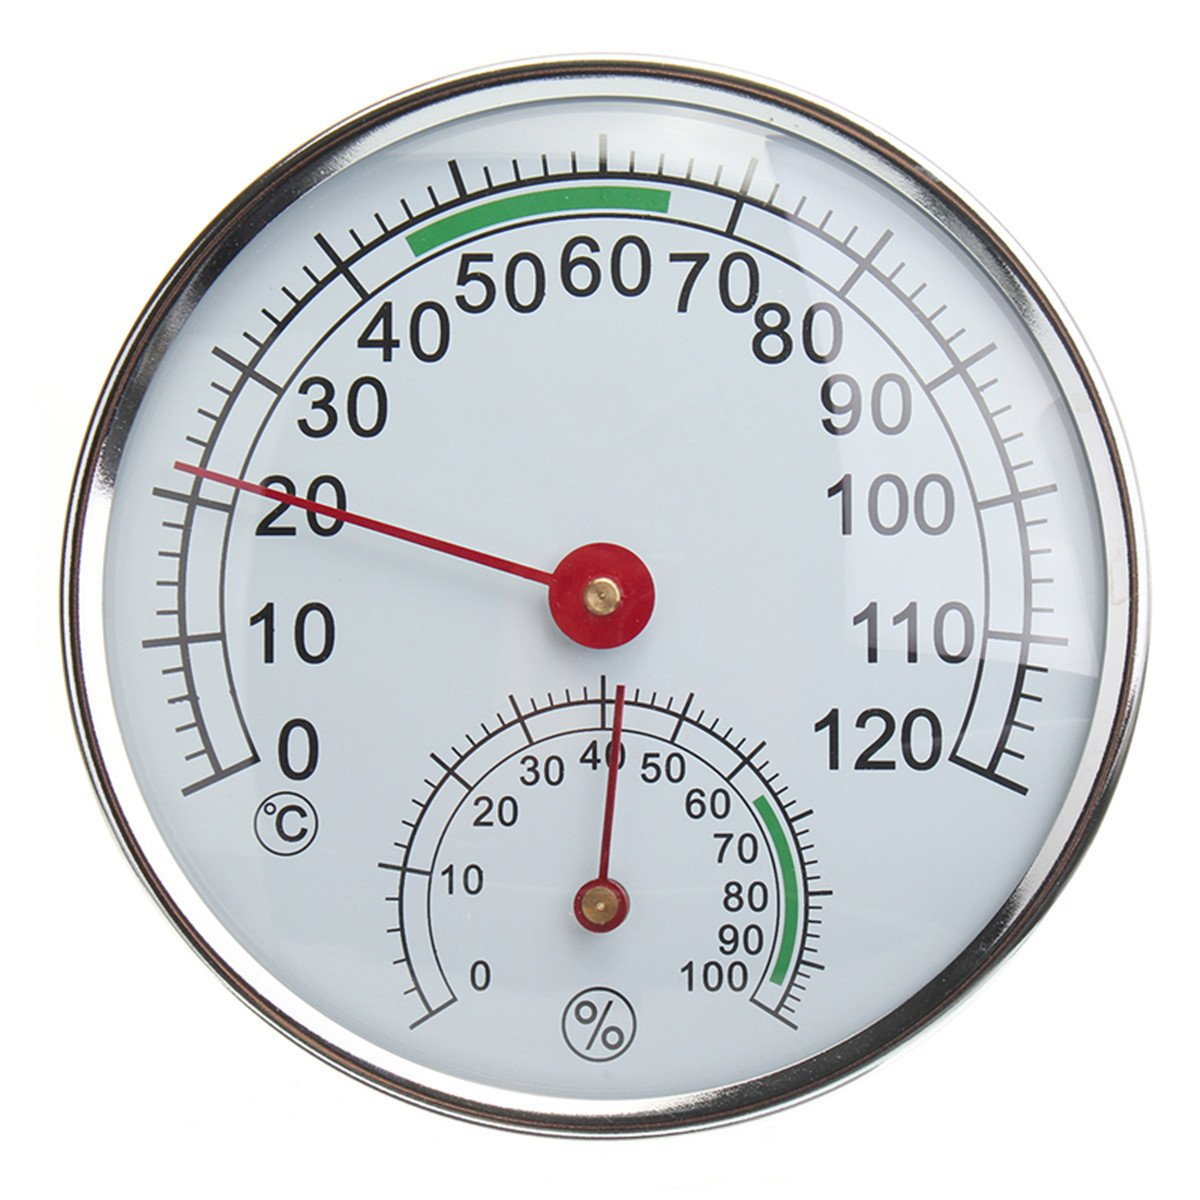 GIMAX Stainless Steel Thermometer/Hygrometer for Sauna Room Temperature Humidity Meter